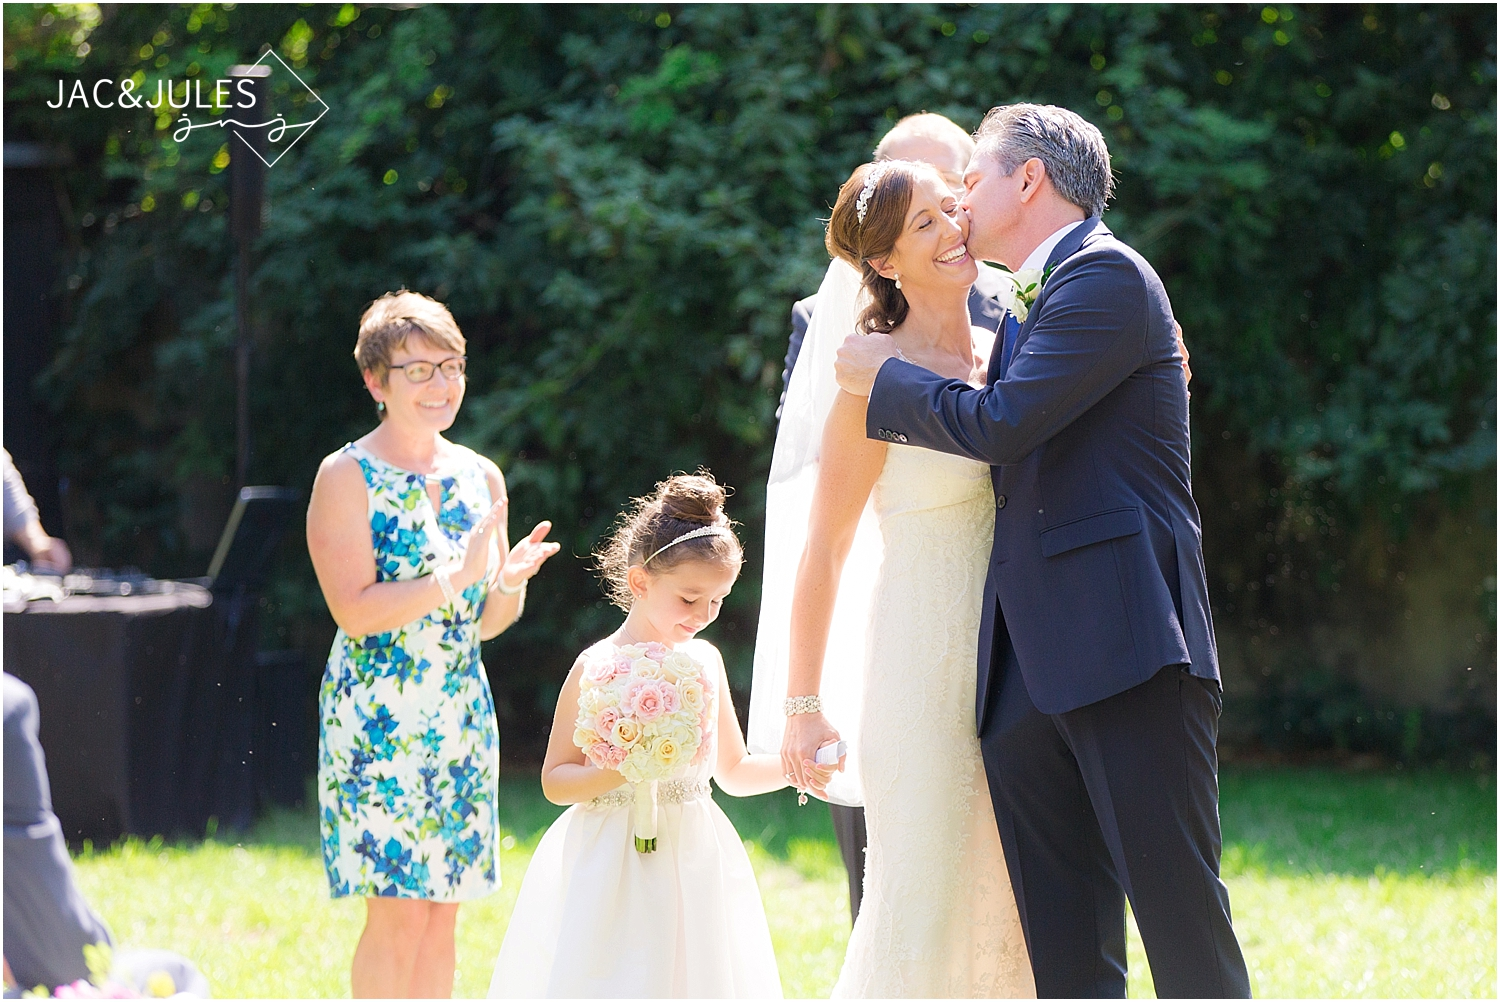 jacnjules photographs a wedding ceremony at Grounds for Sculpture in Hamilton, NJ